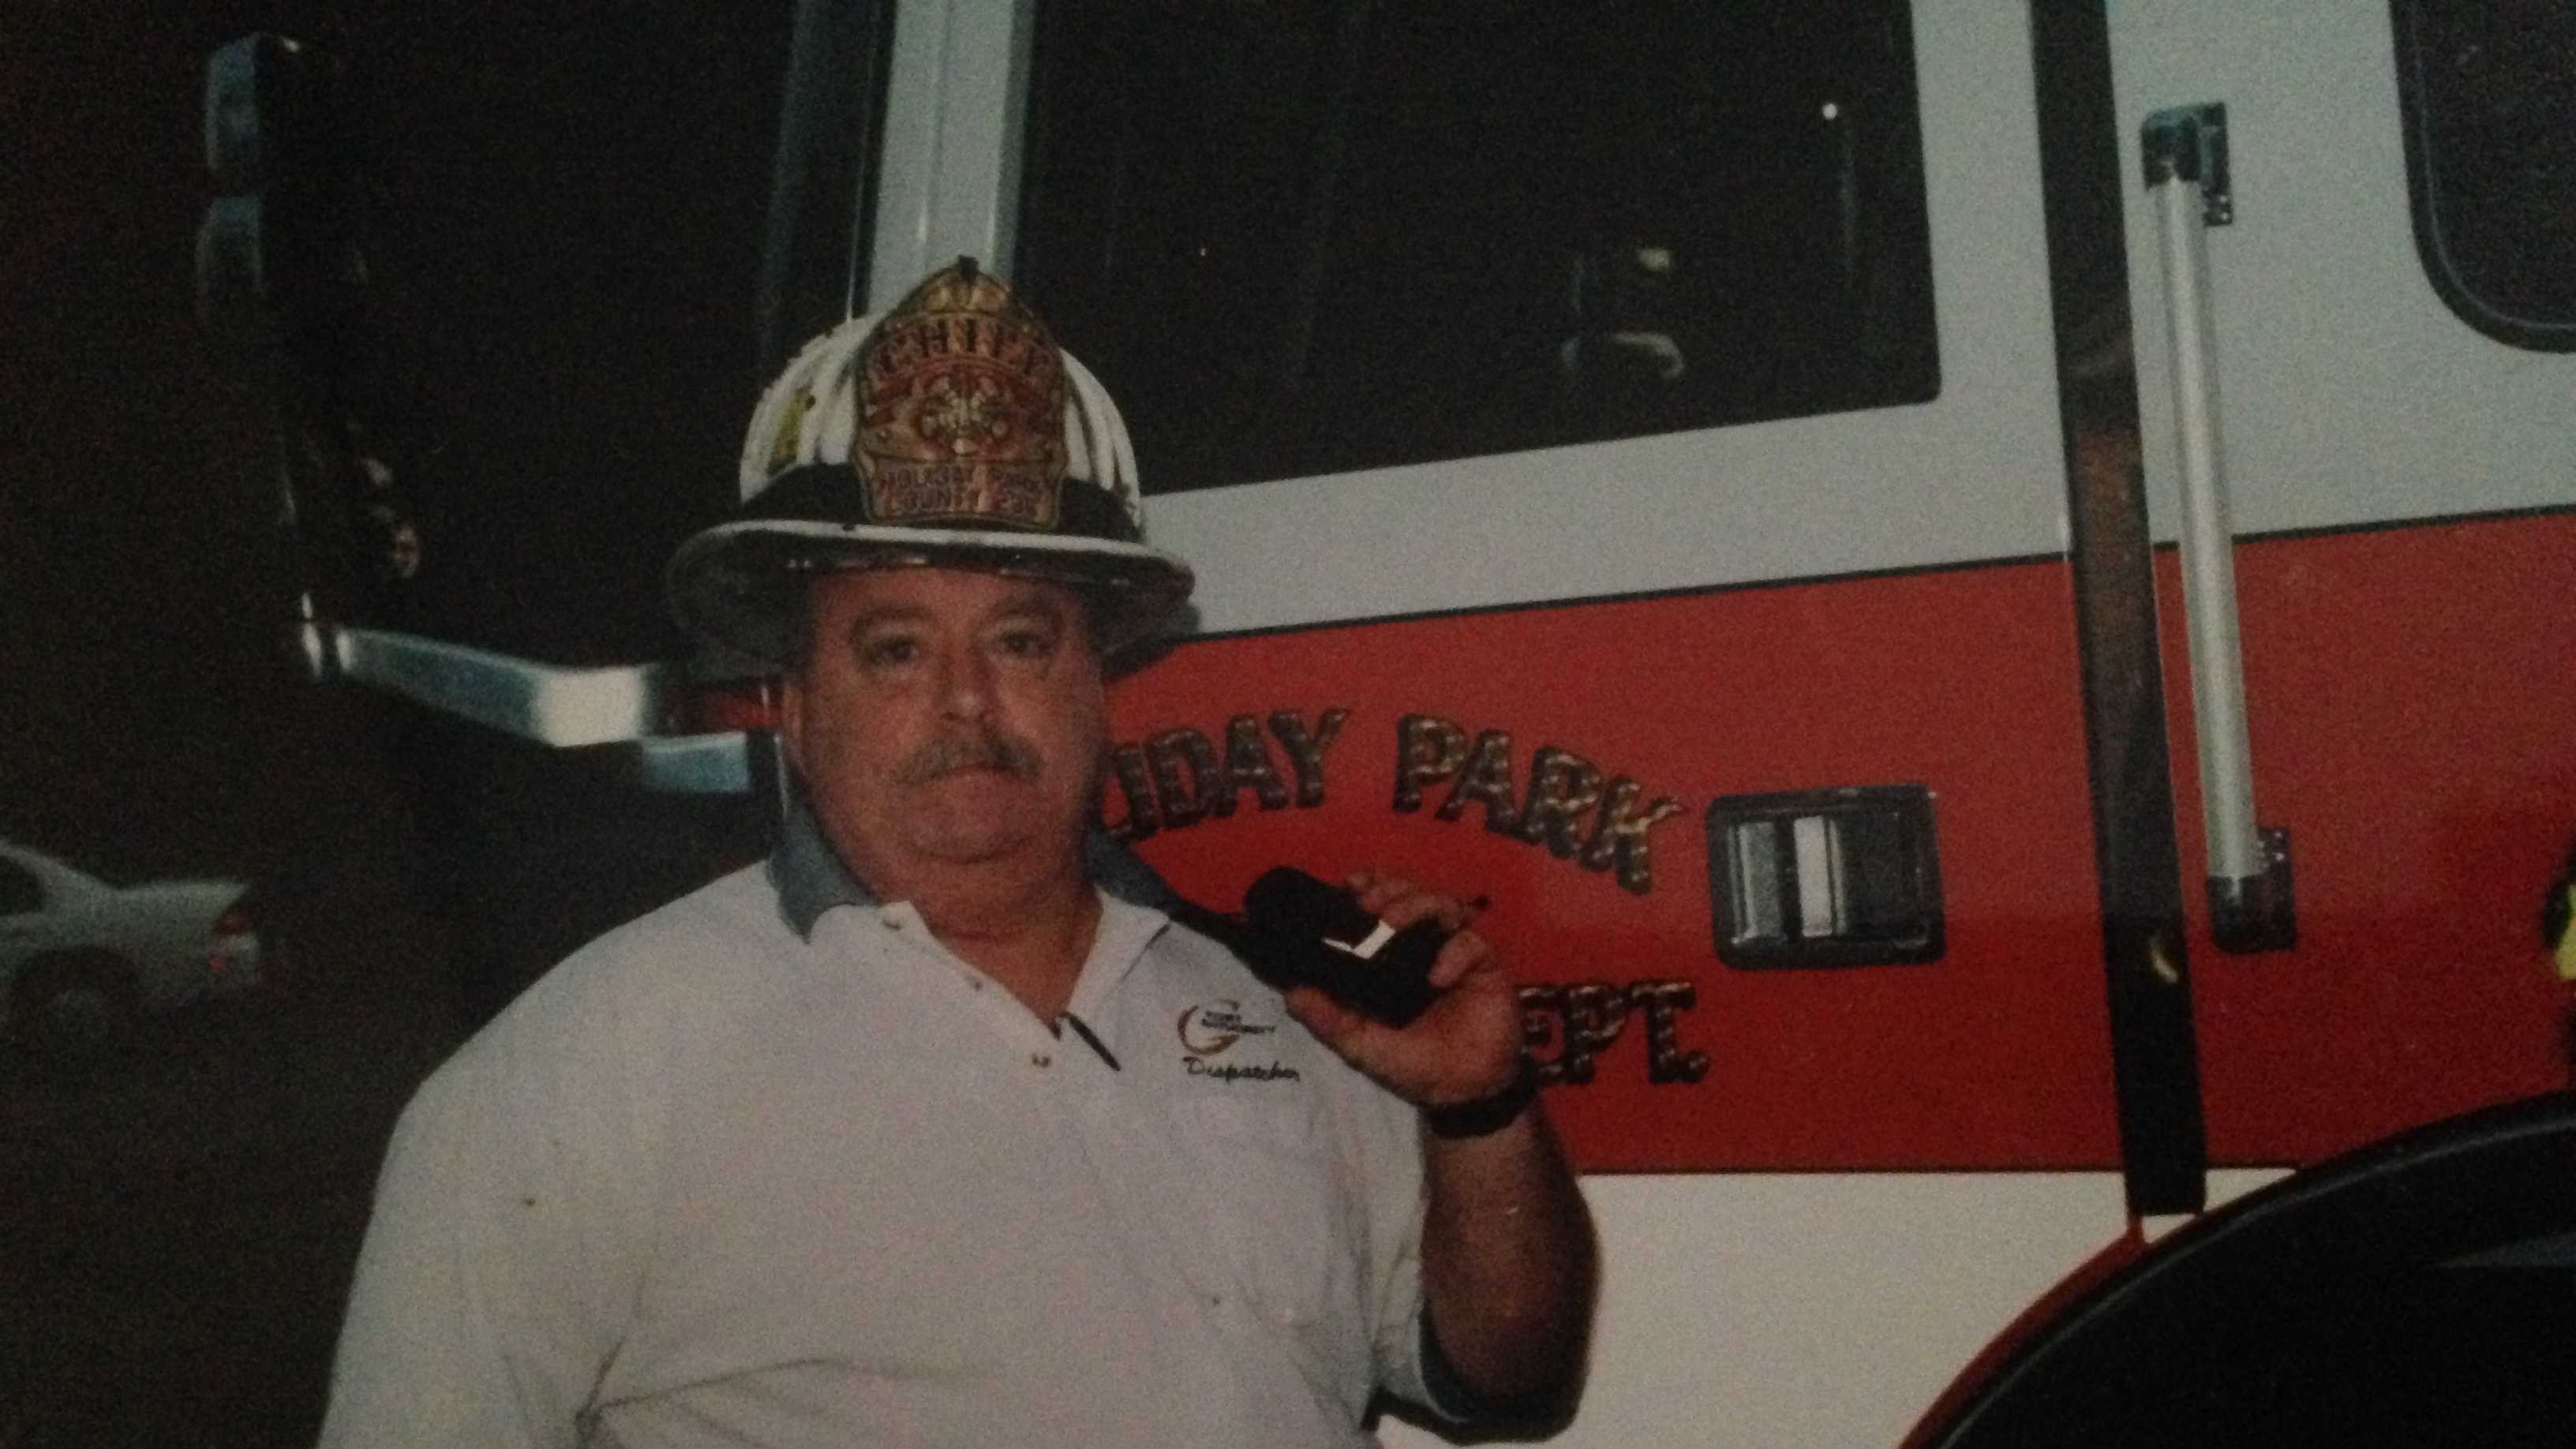 Chief Larry Glass in front of Engine 236-2 of the Holiday Park Volunteer Fire Department in Plum, PA